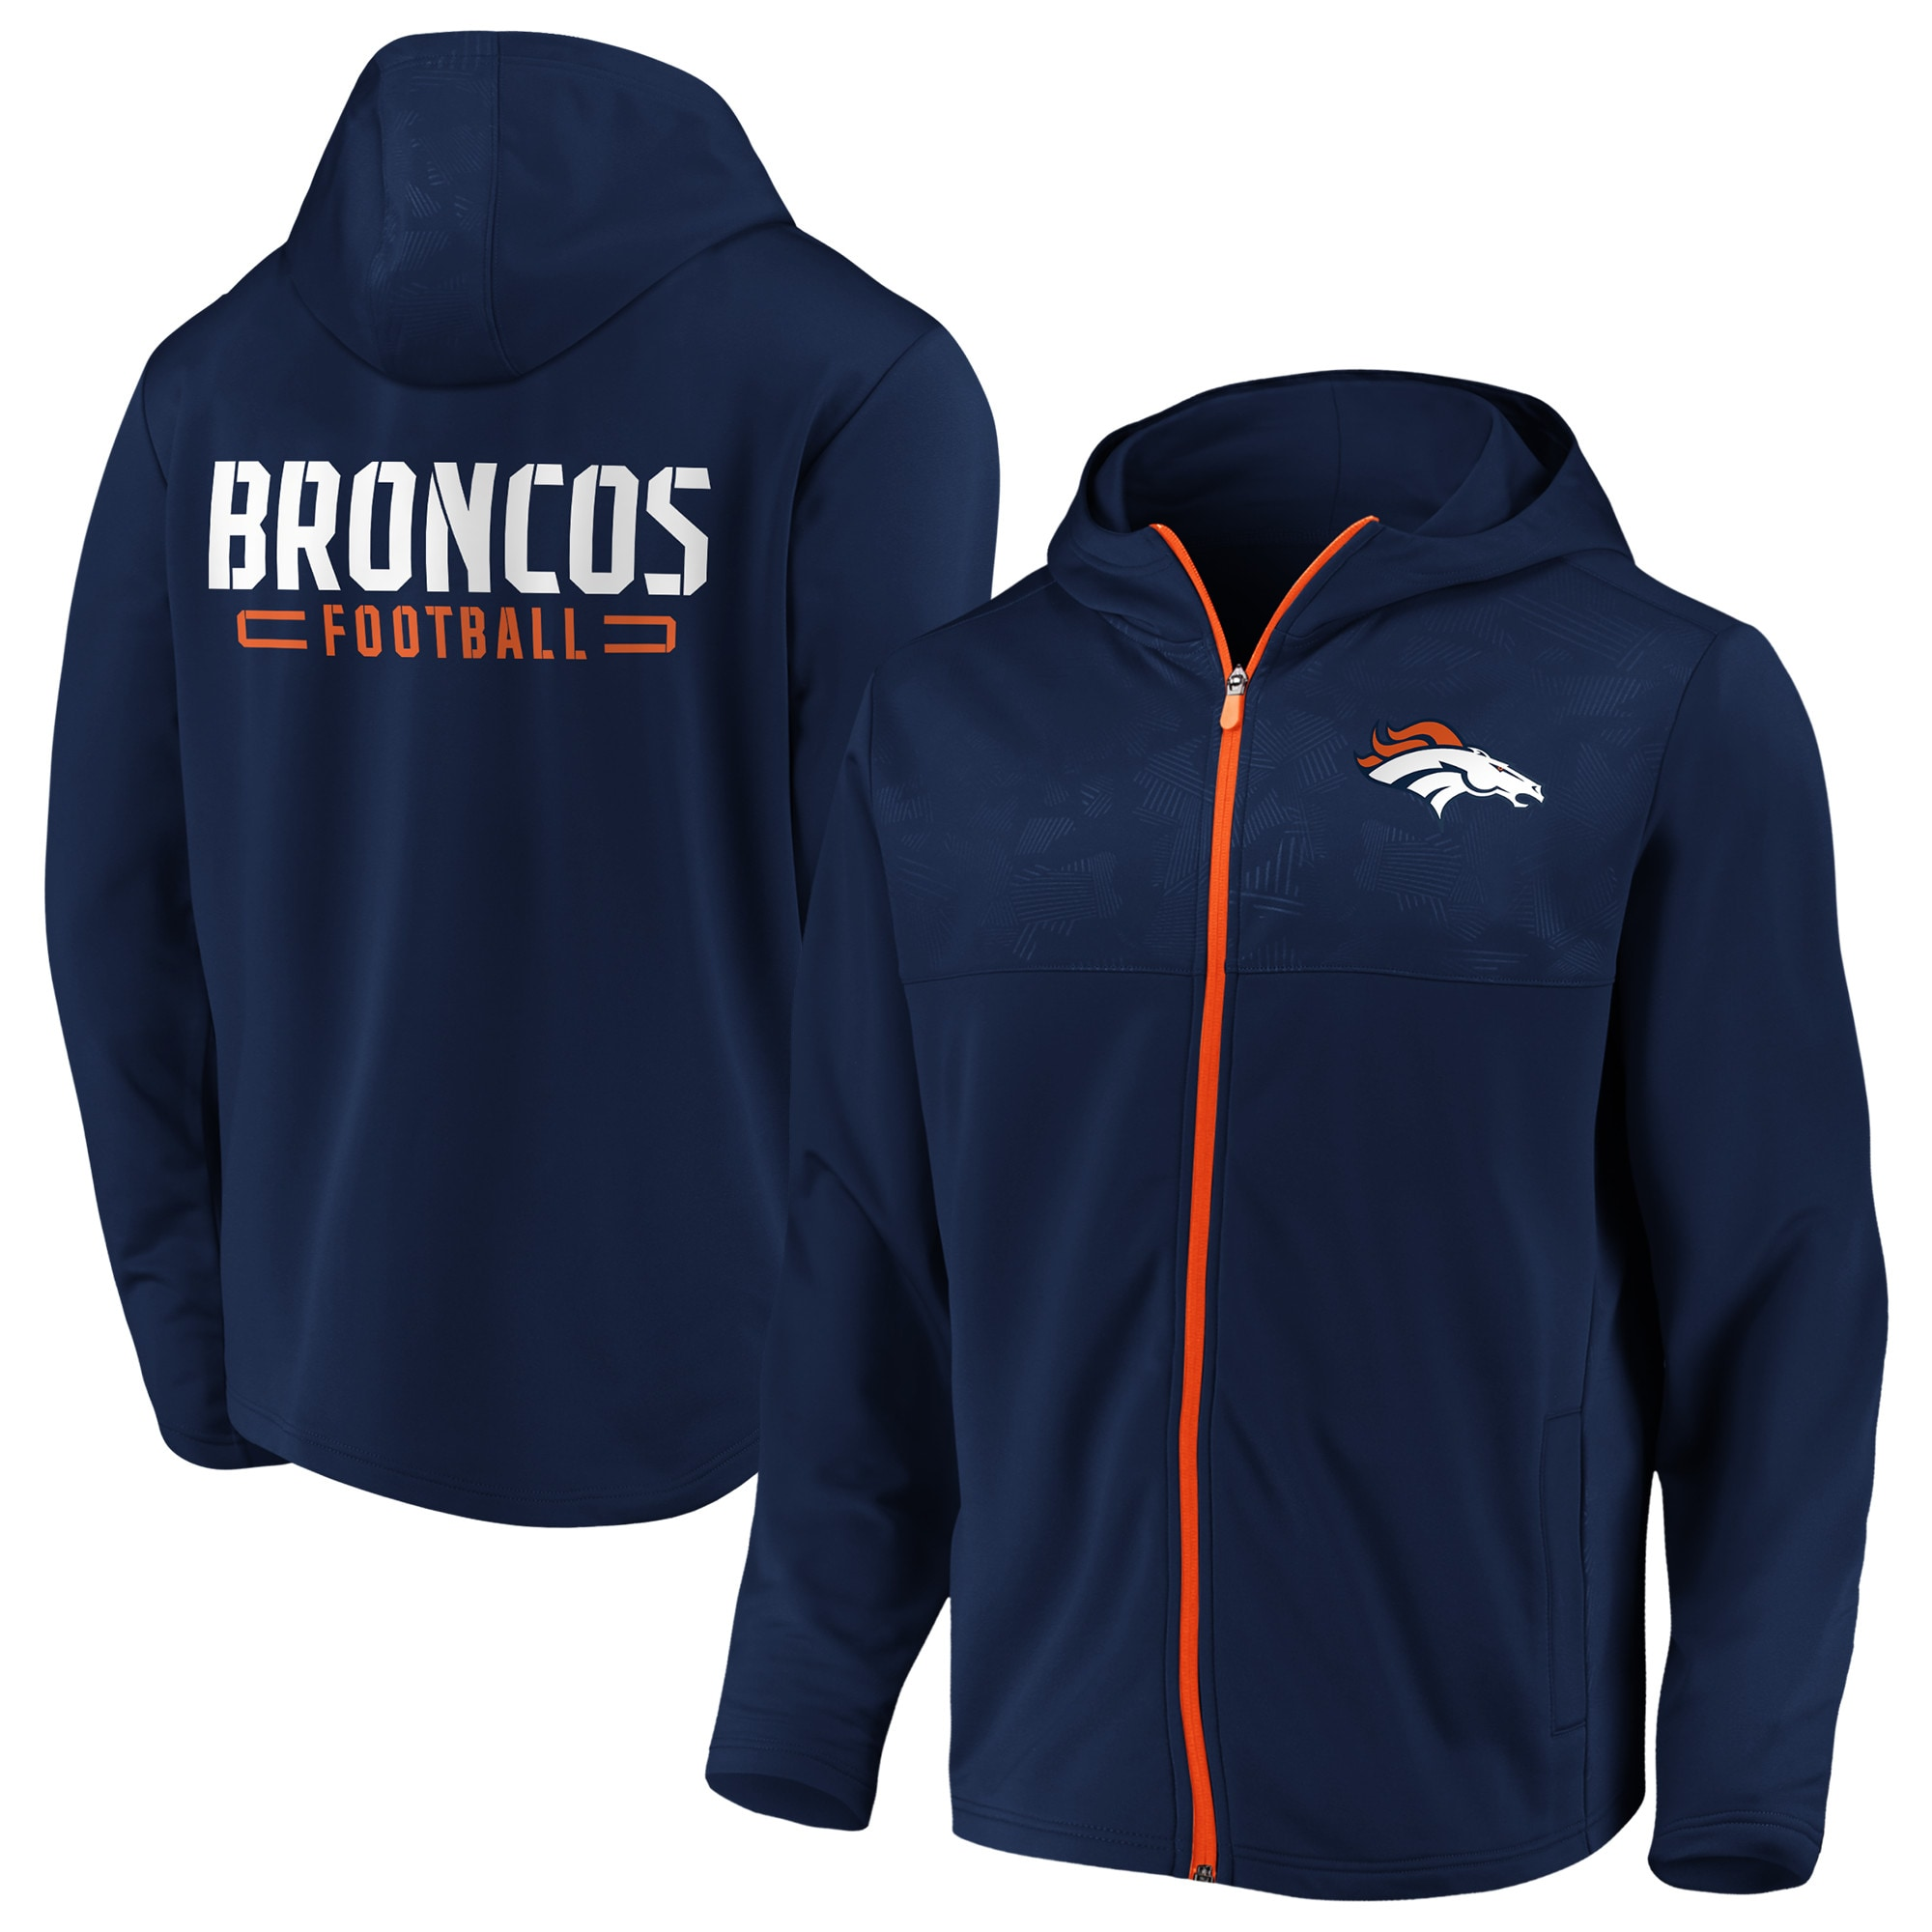 Denver Broncos NFL Pro Line by Fanatics Branded Big & Tall Iconic Defender Mission Primary Full-Zip Hoodie - Navy